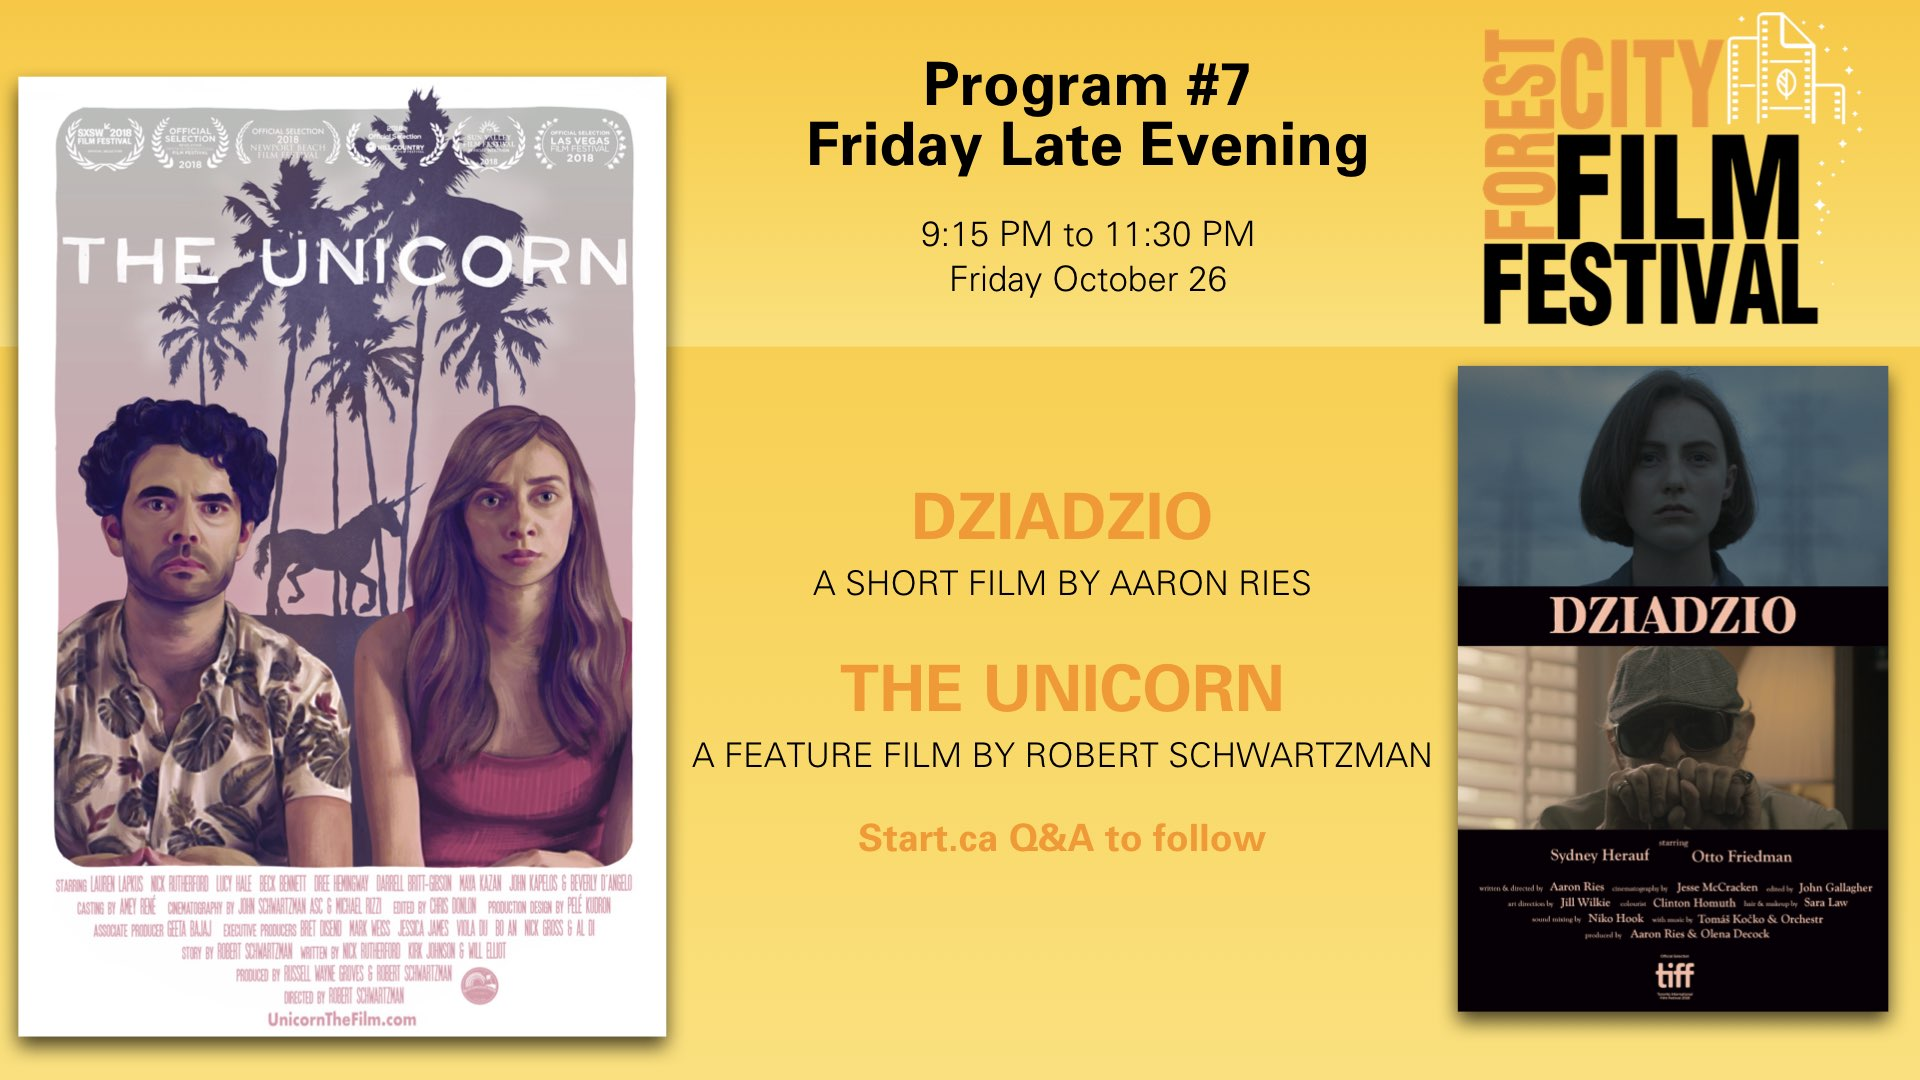 Forest City Film Festival 2018 - Friday Night Program #7